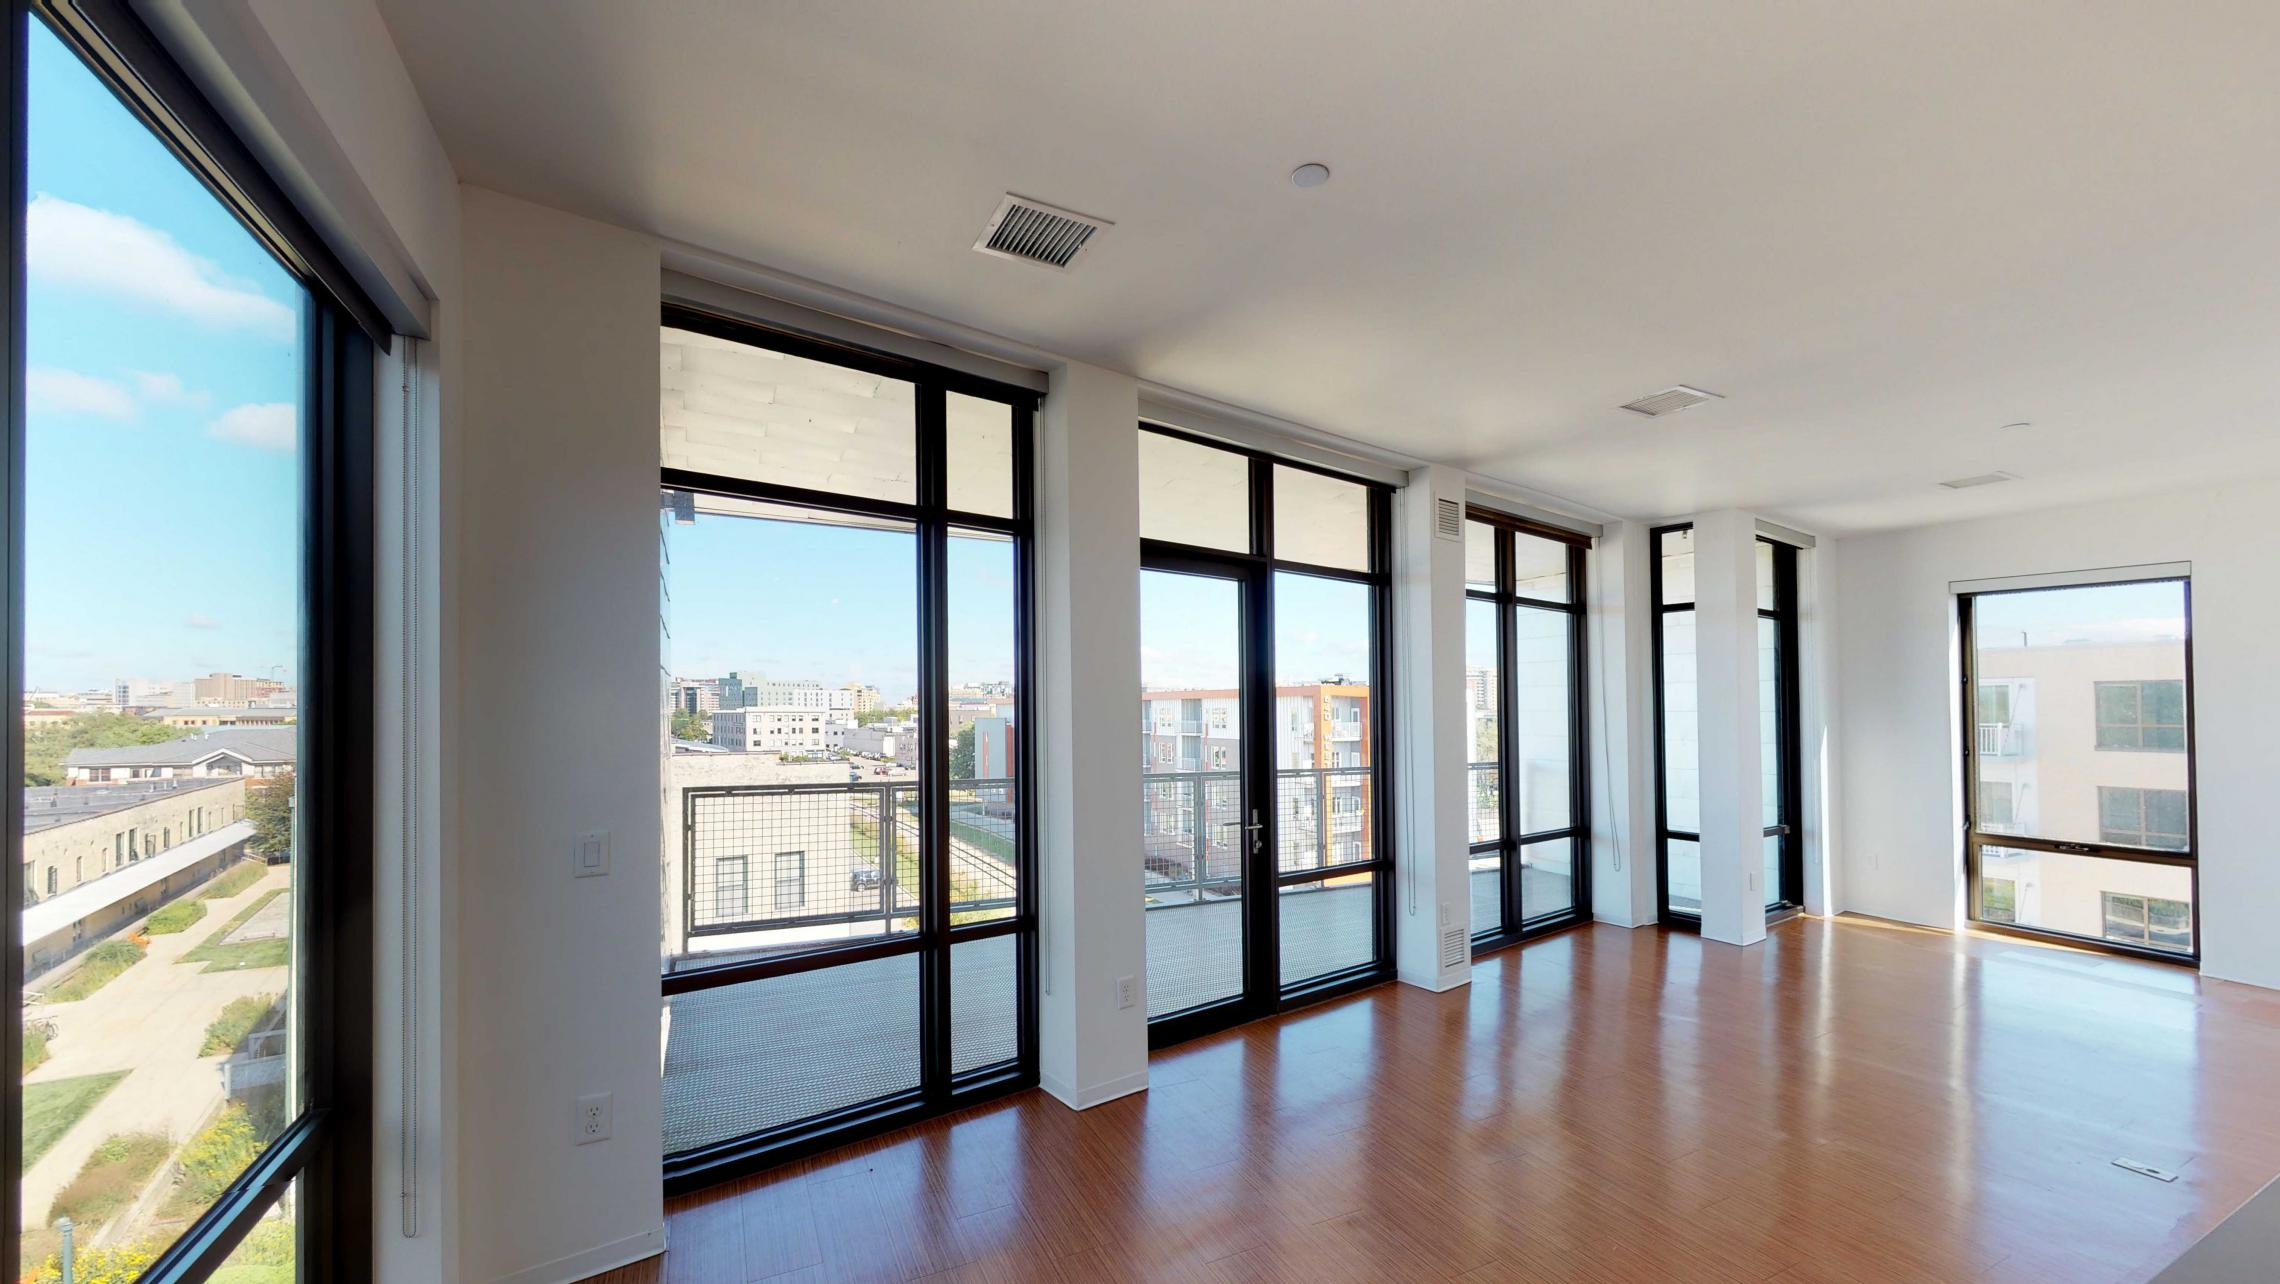 SEVEN27-Apartment-524-Two bedroom-Modern-Luxuy-Upscale-Capitol View-Lake View-Tp Floor-Balcony-Terrace-City View-living .jpg